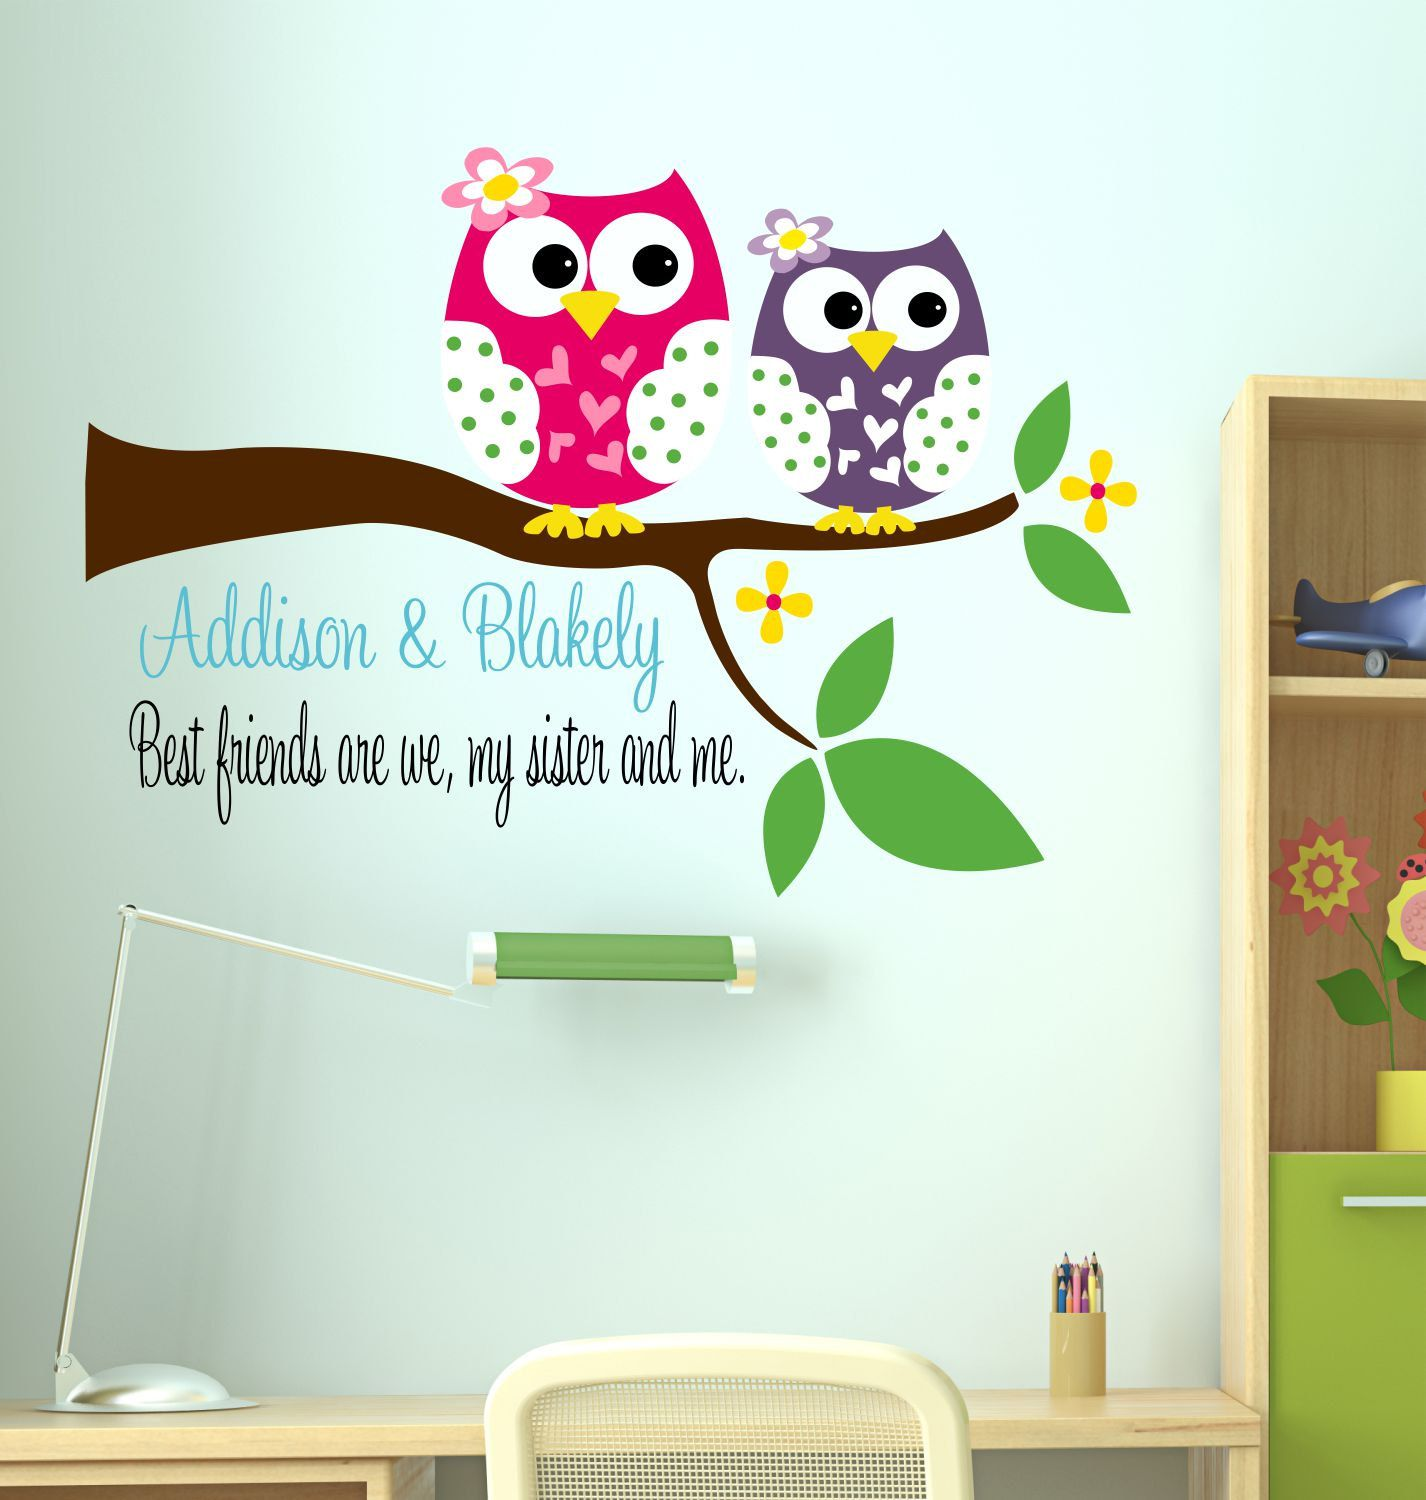 Owl decal sisters wall decal with owl childrens decor owl owl decal sisters wall decal with owl childrens decor owl vinyl wall decal amipublicfo Gallery